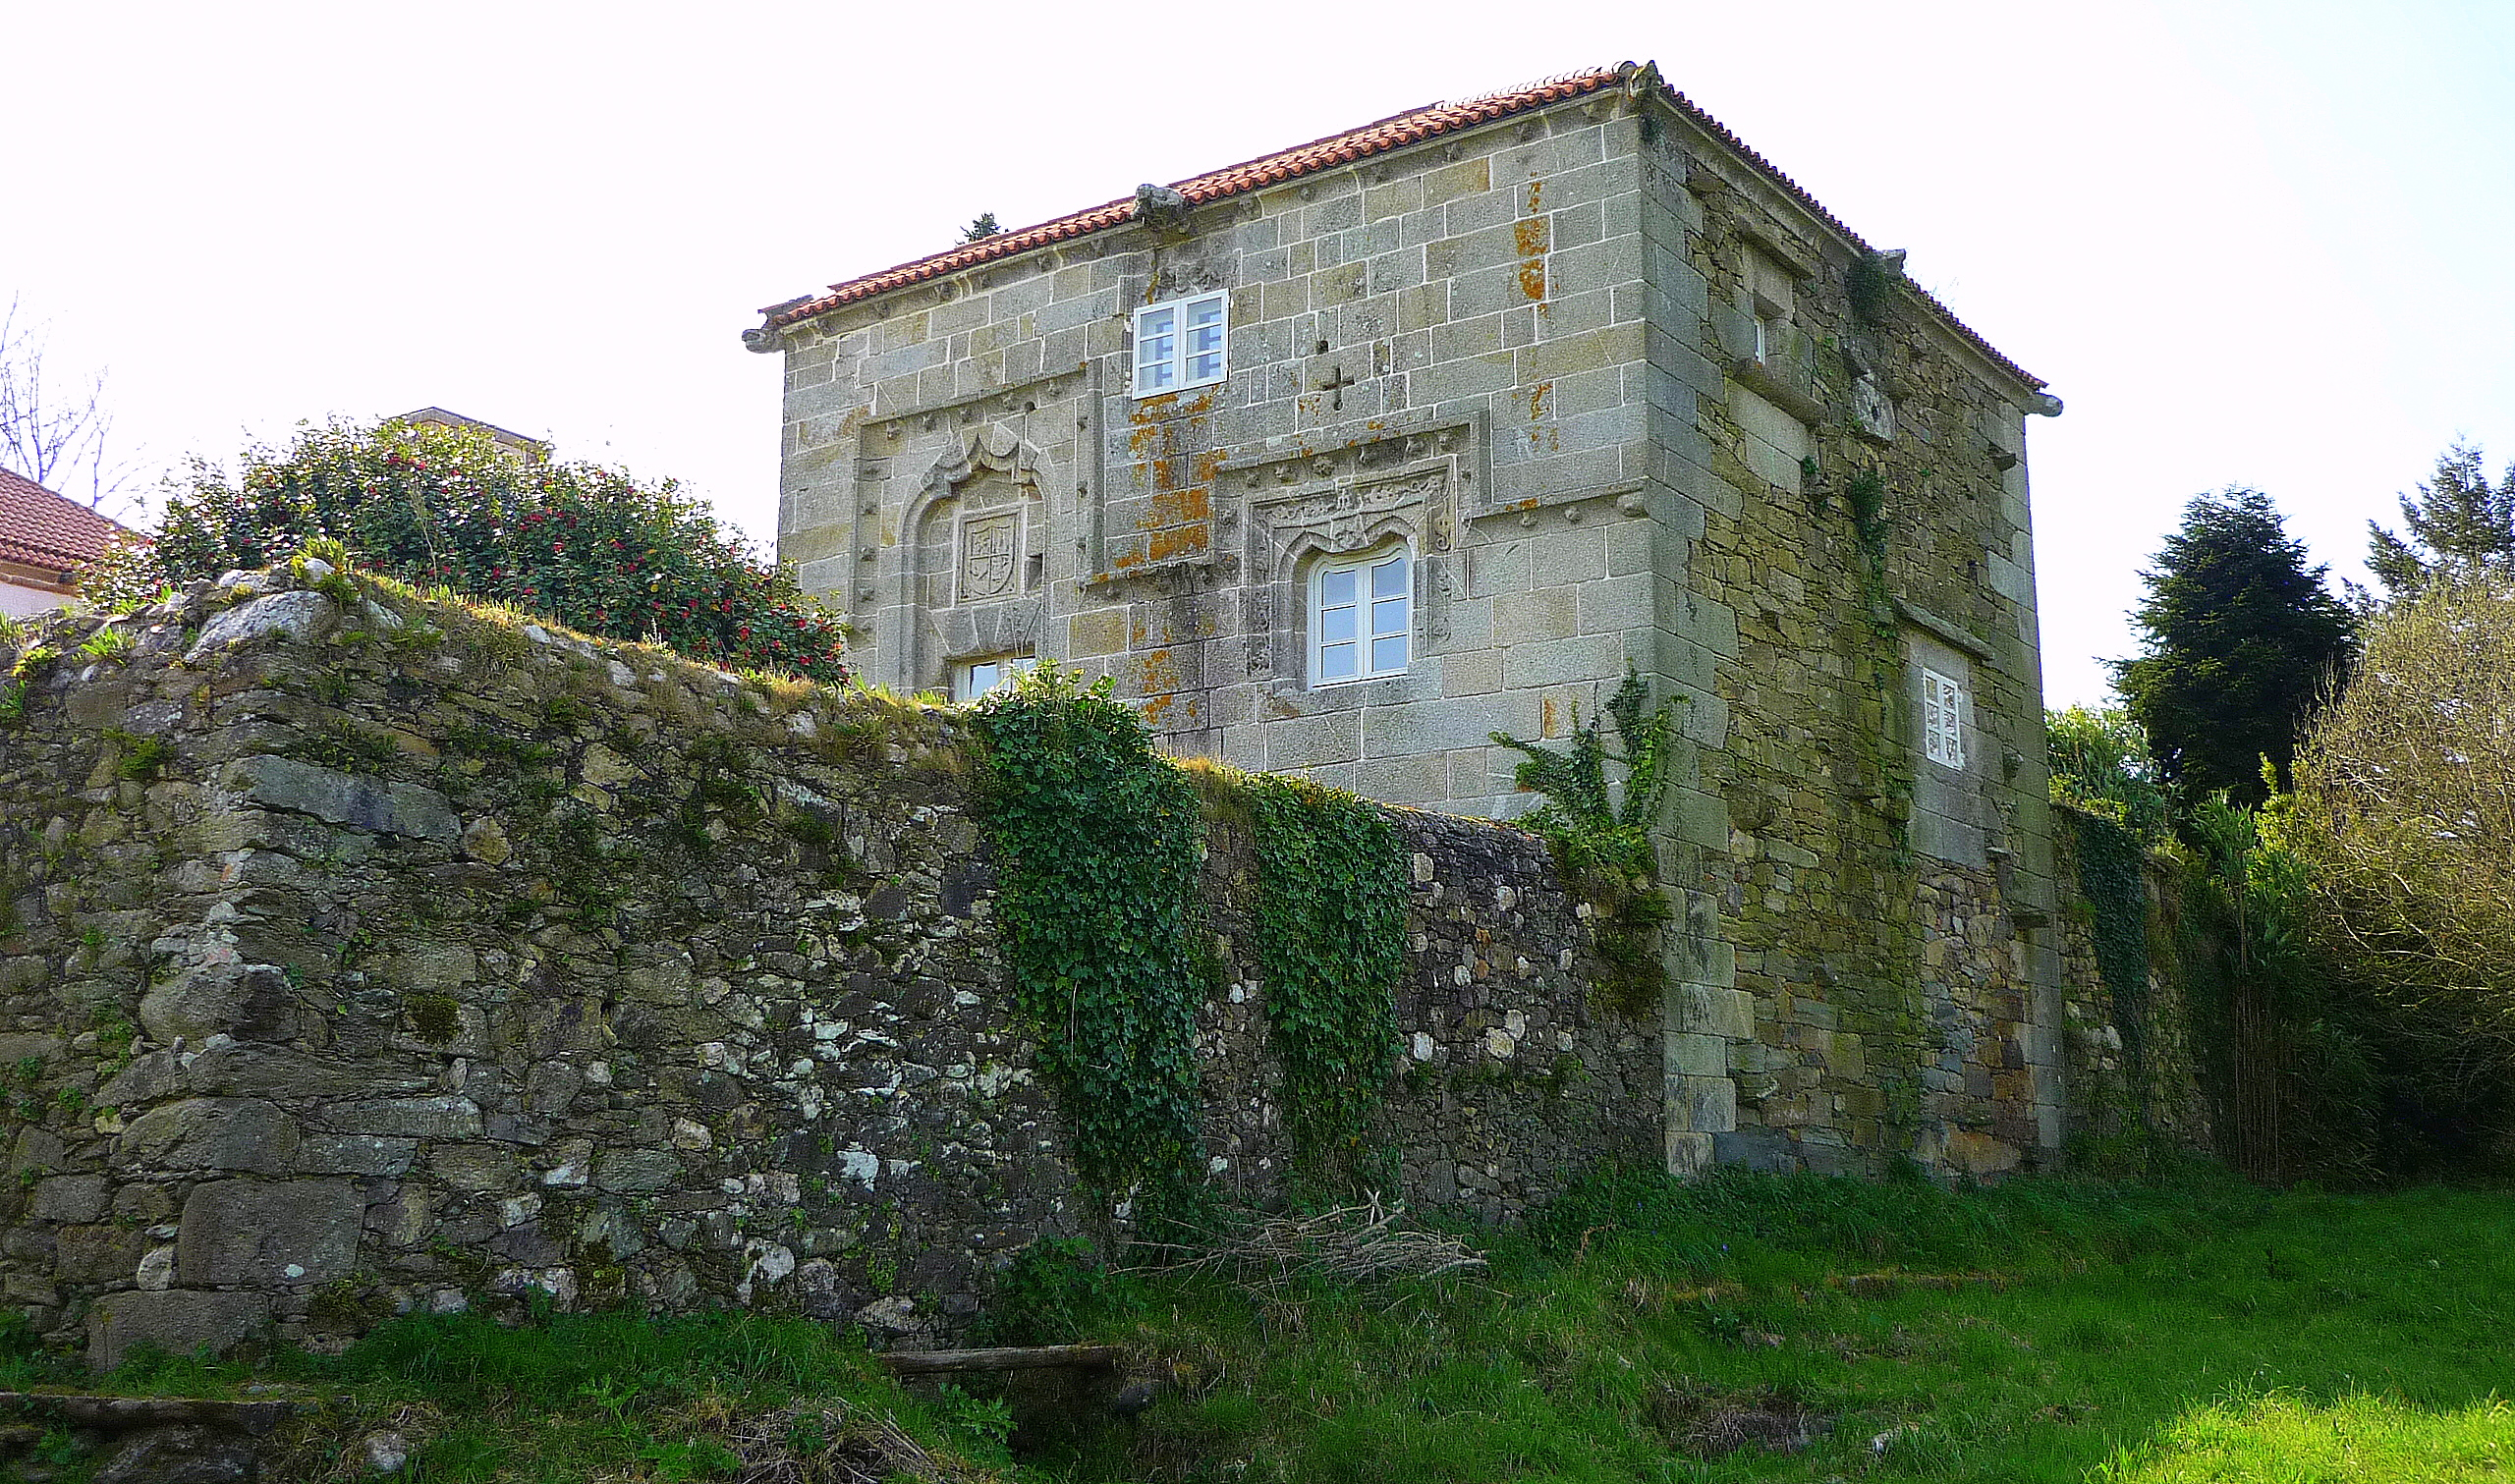 https://upload.wikimedia.org/wikipedia/commons/8/8f/Torres_do_Allo%2C_Zas.jpg